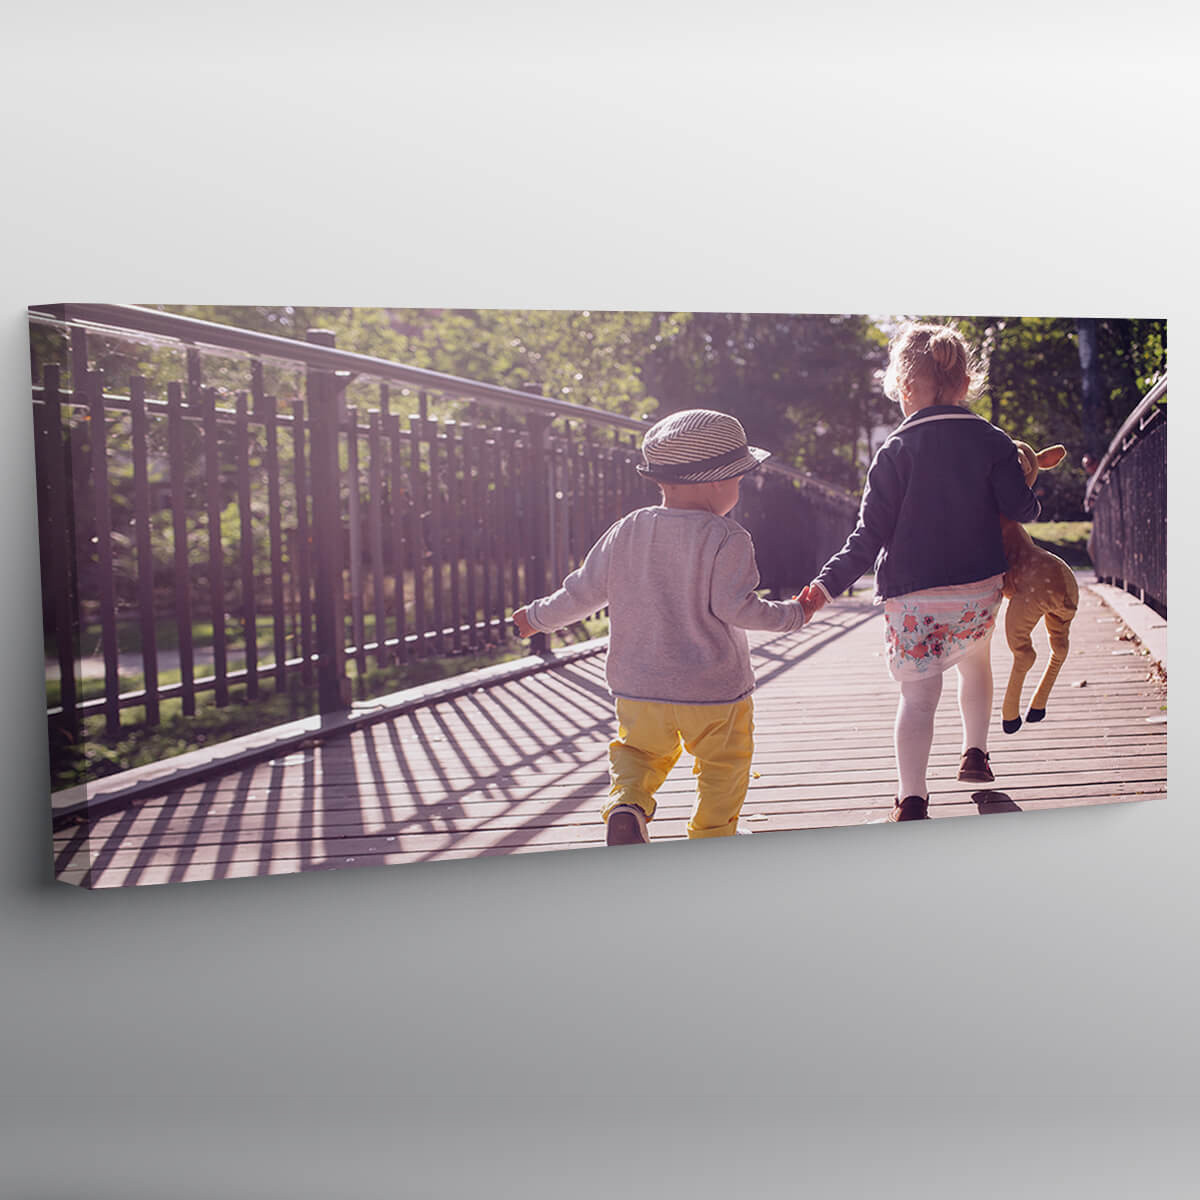 "personalised 24x48"" Canvas"